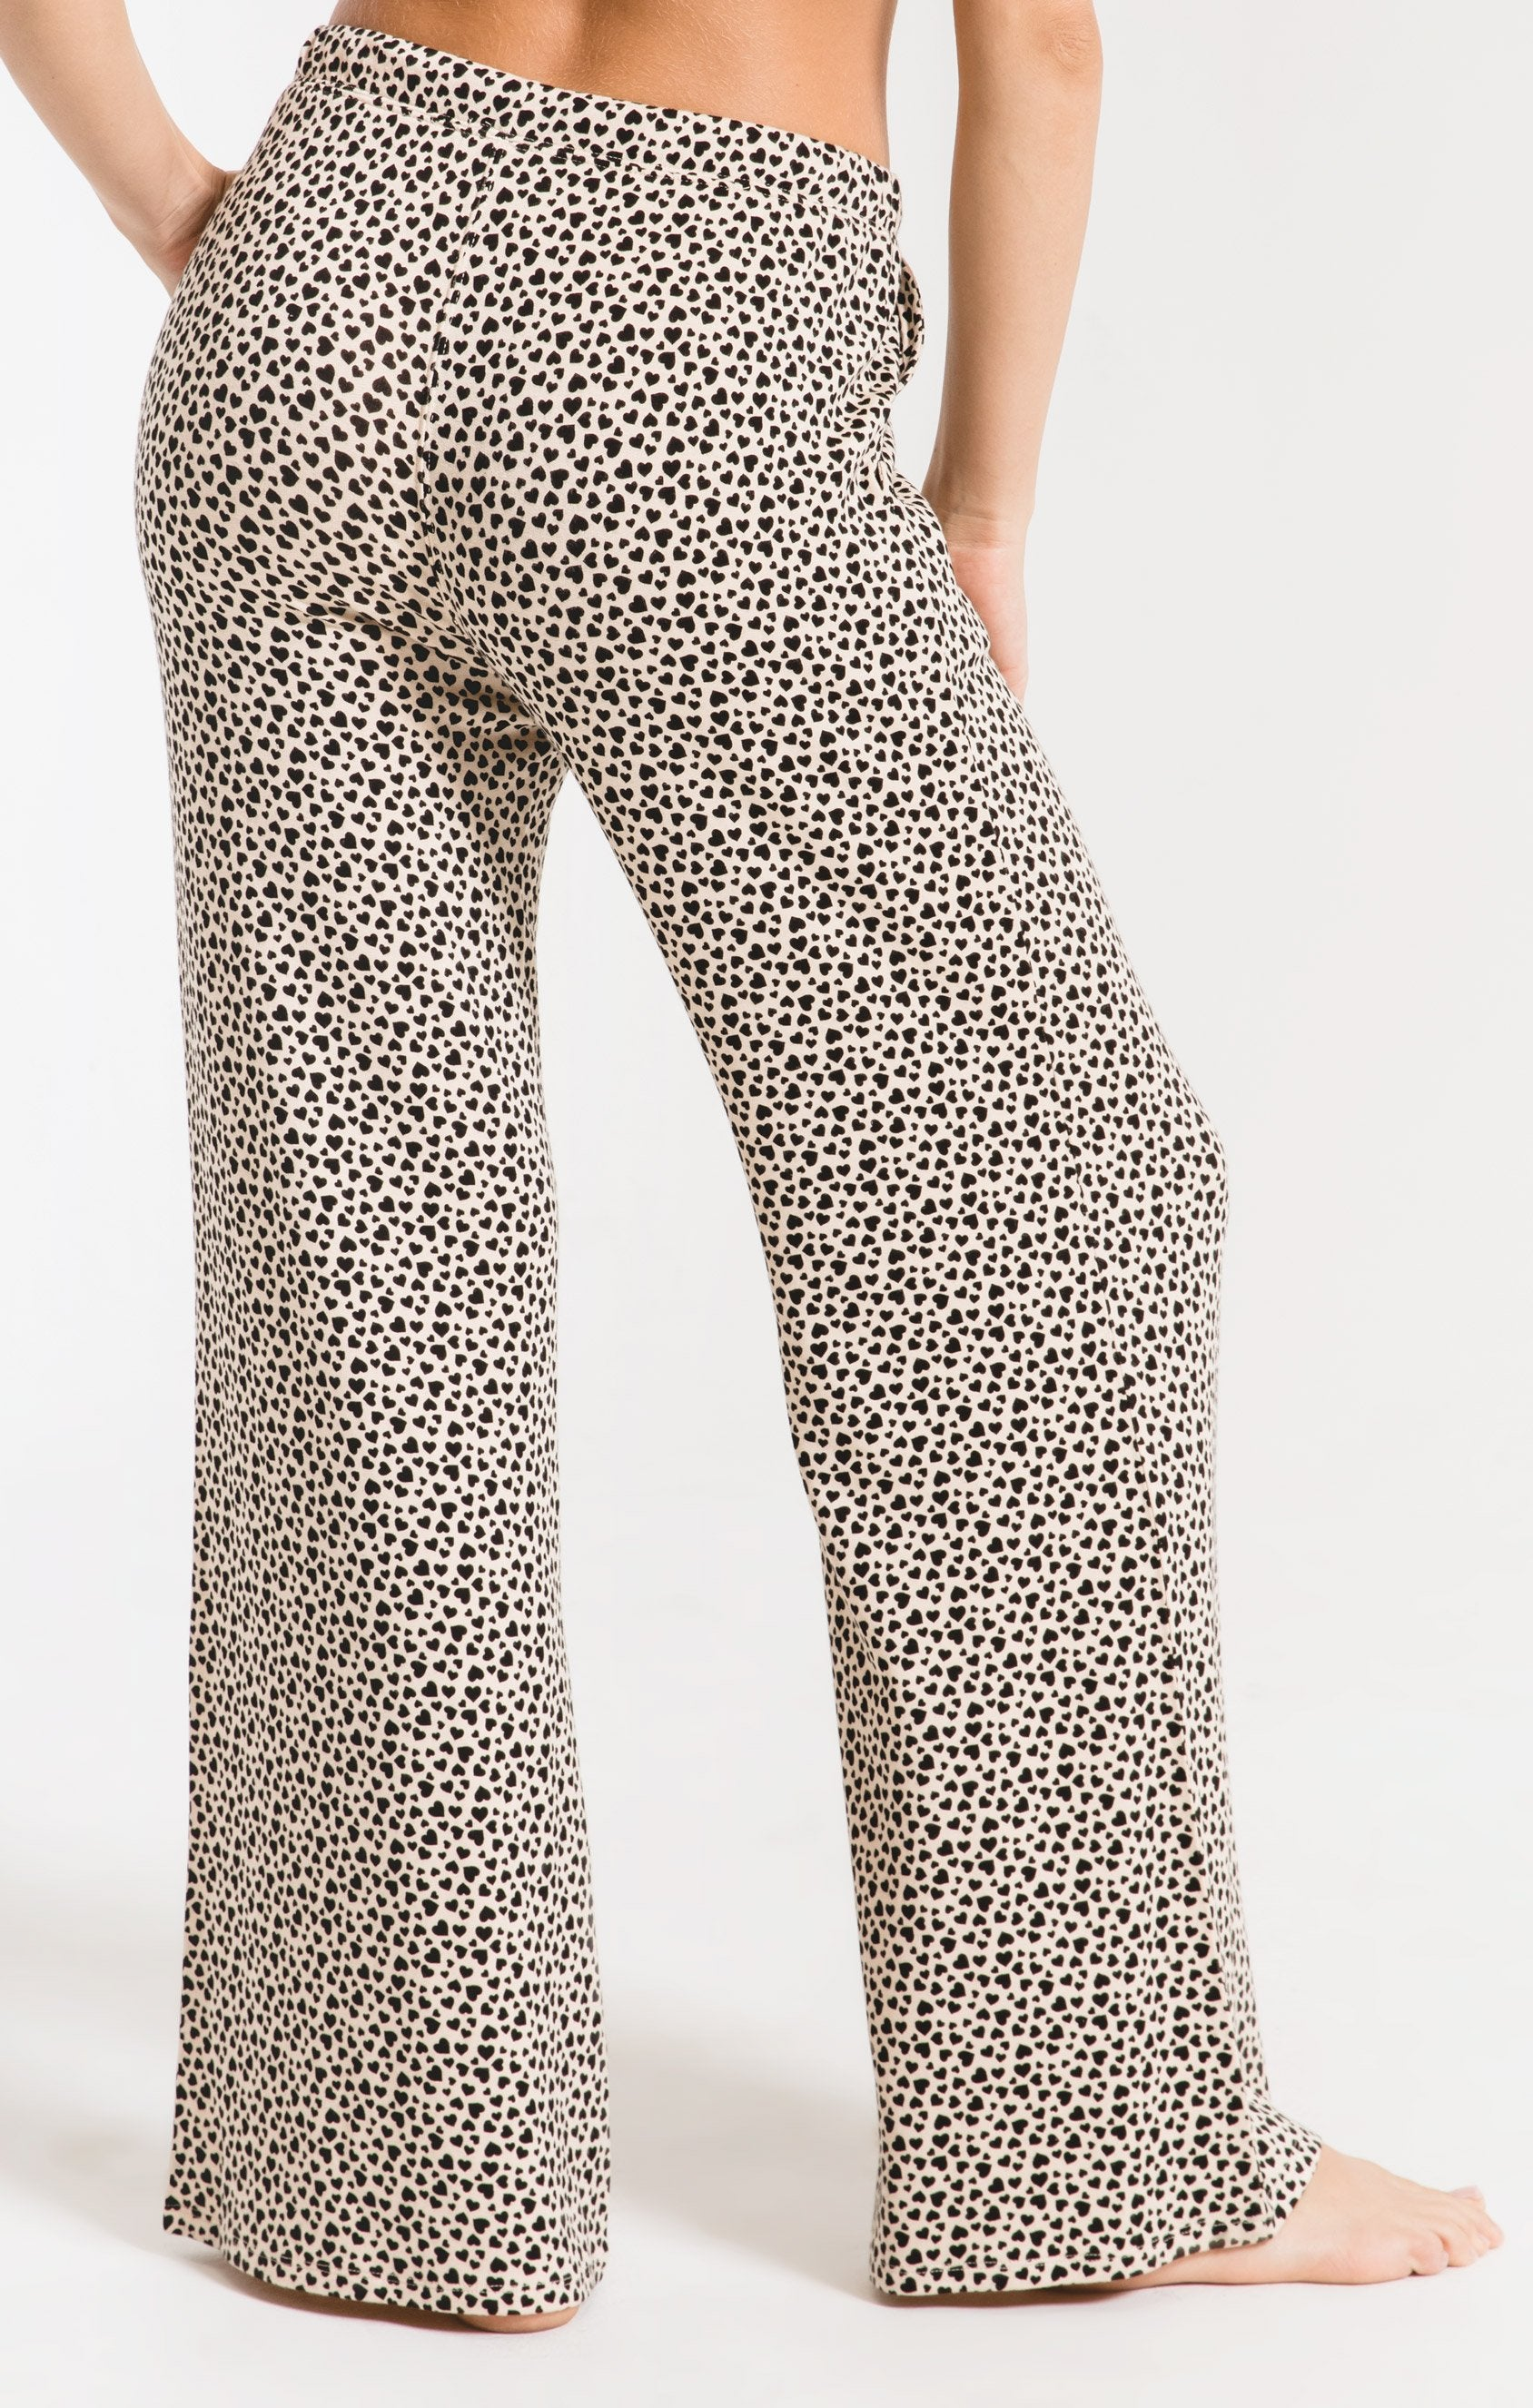 Pants Mini Heart Wideleg Pant Light Beige